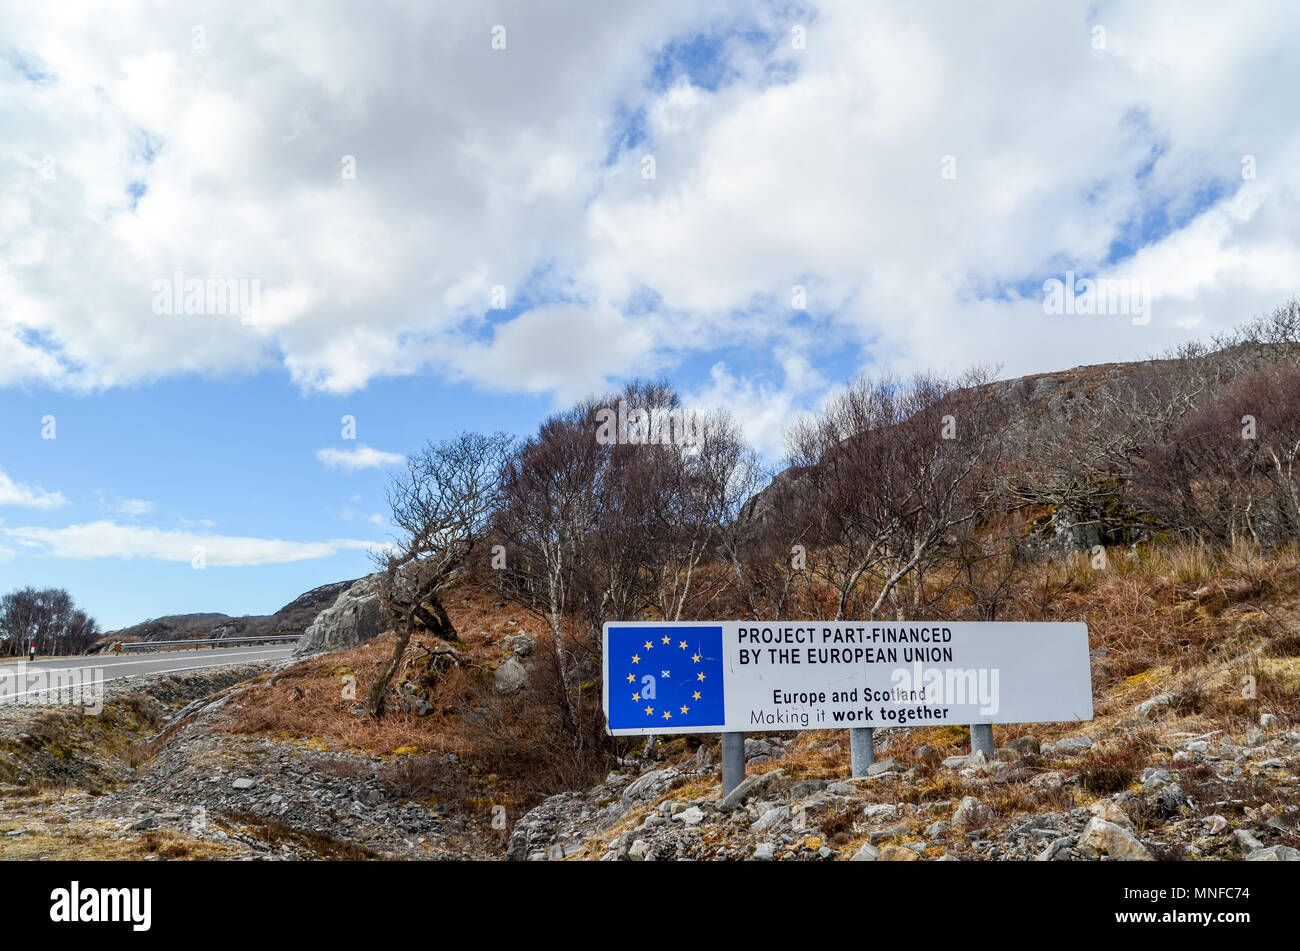 'Europe and Scotland' : Road sign in Highland, Scotland (Mallaig), highlighting the cooperation between Scotland and the European Union - Stock Image